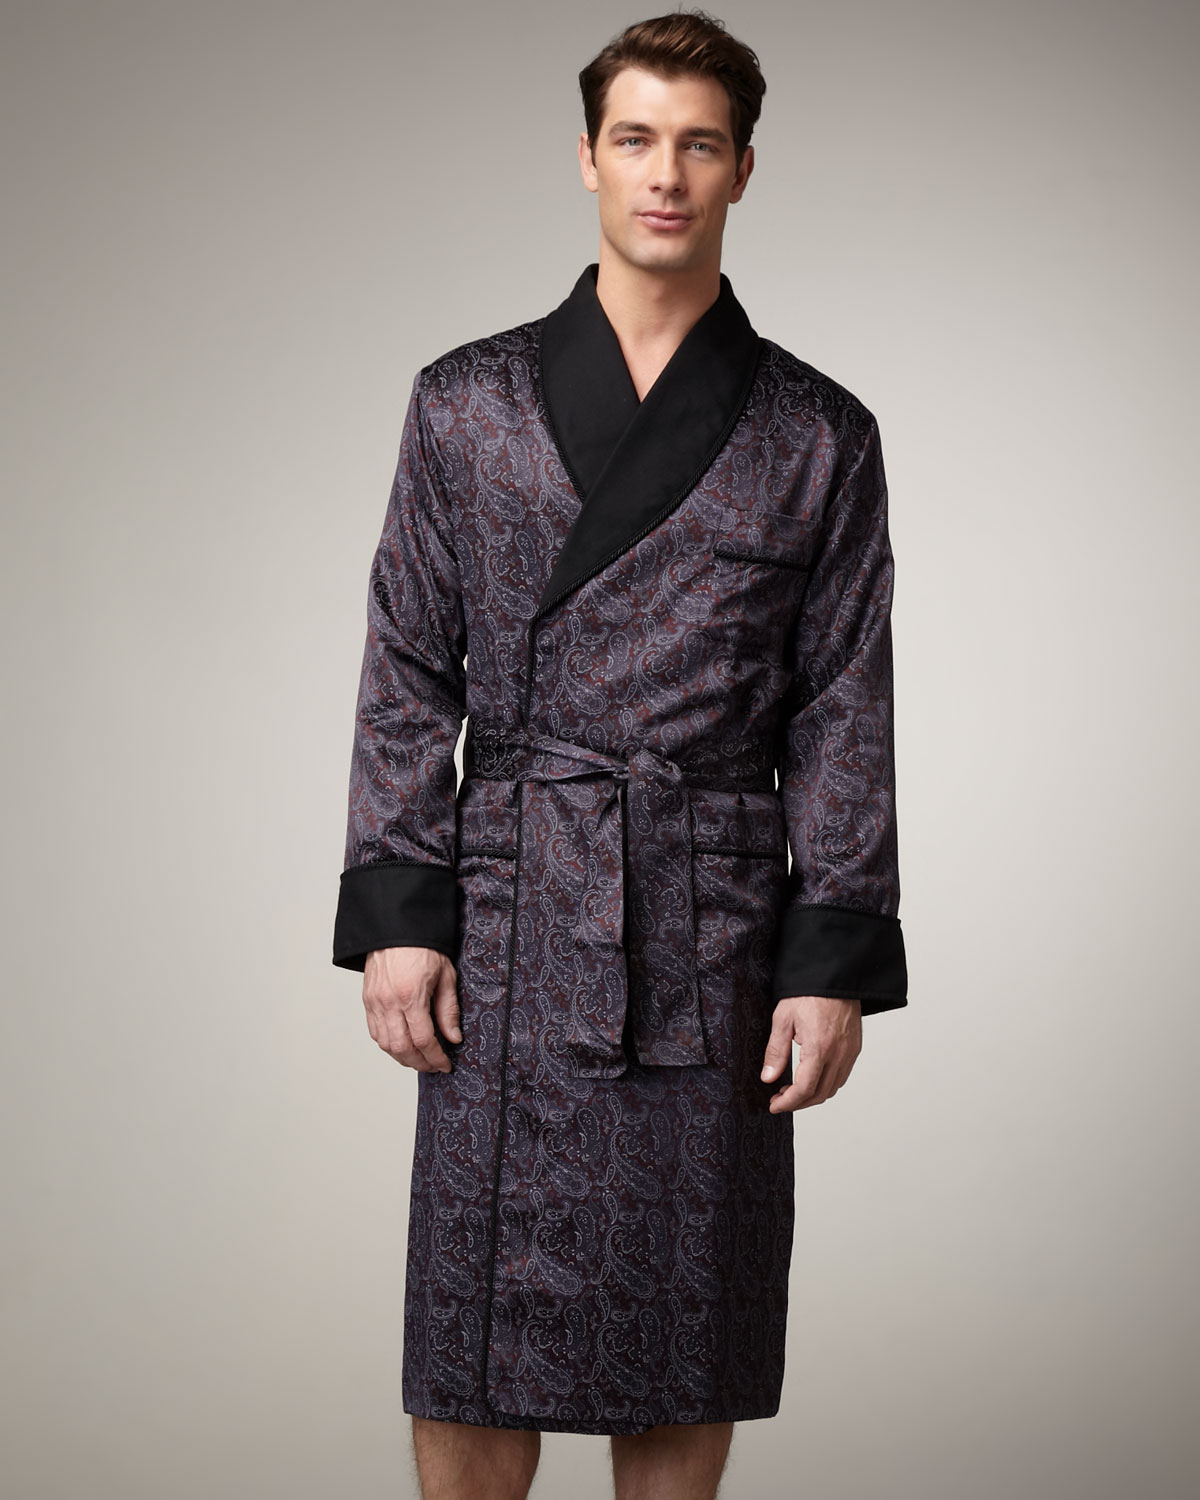 Lyst - Stefano Ricci Silk Paisley Robe in Black for Men 3a5a70850